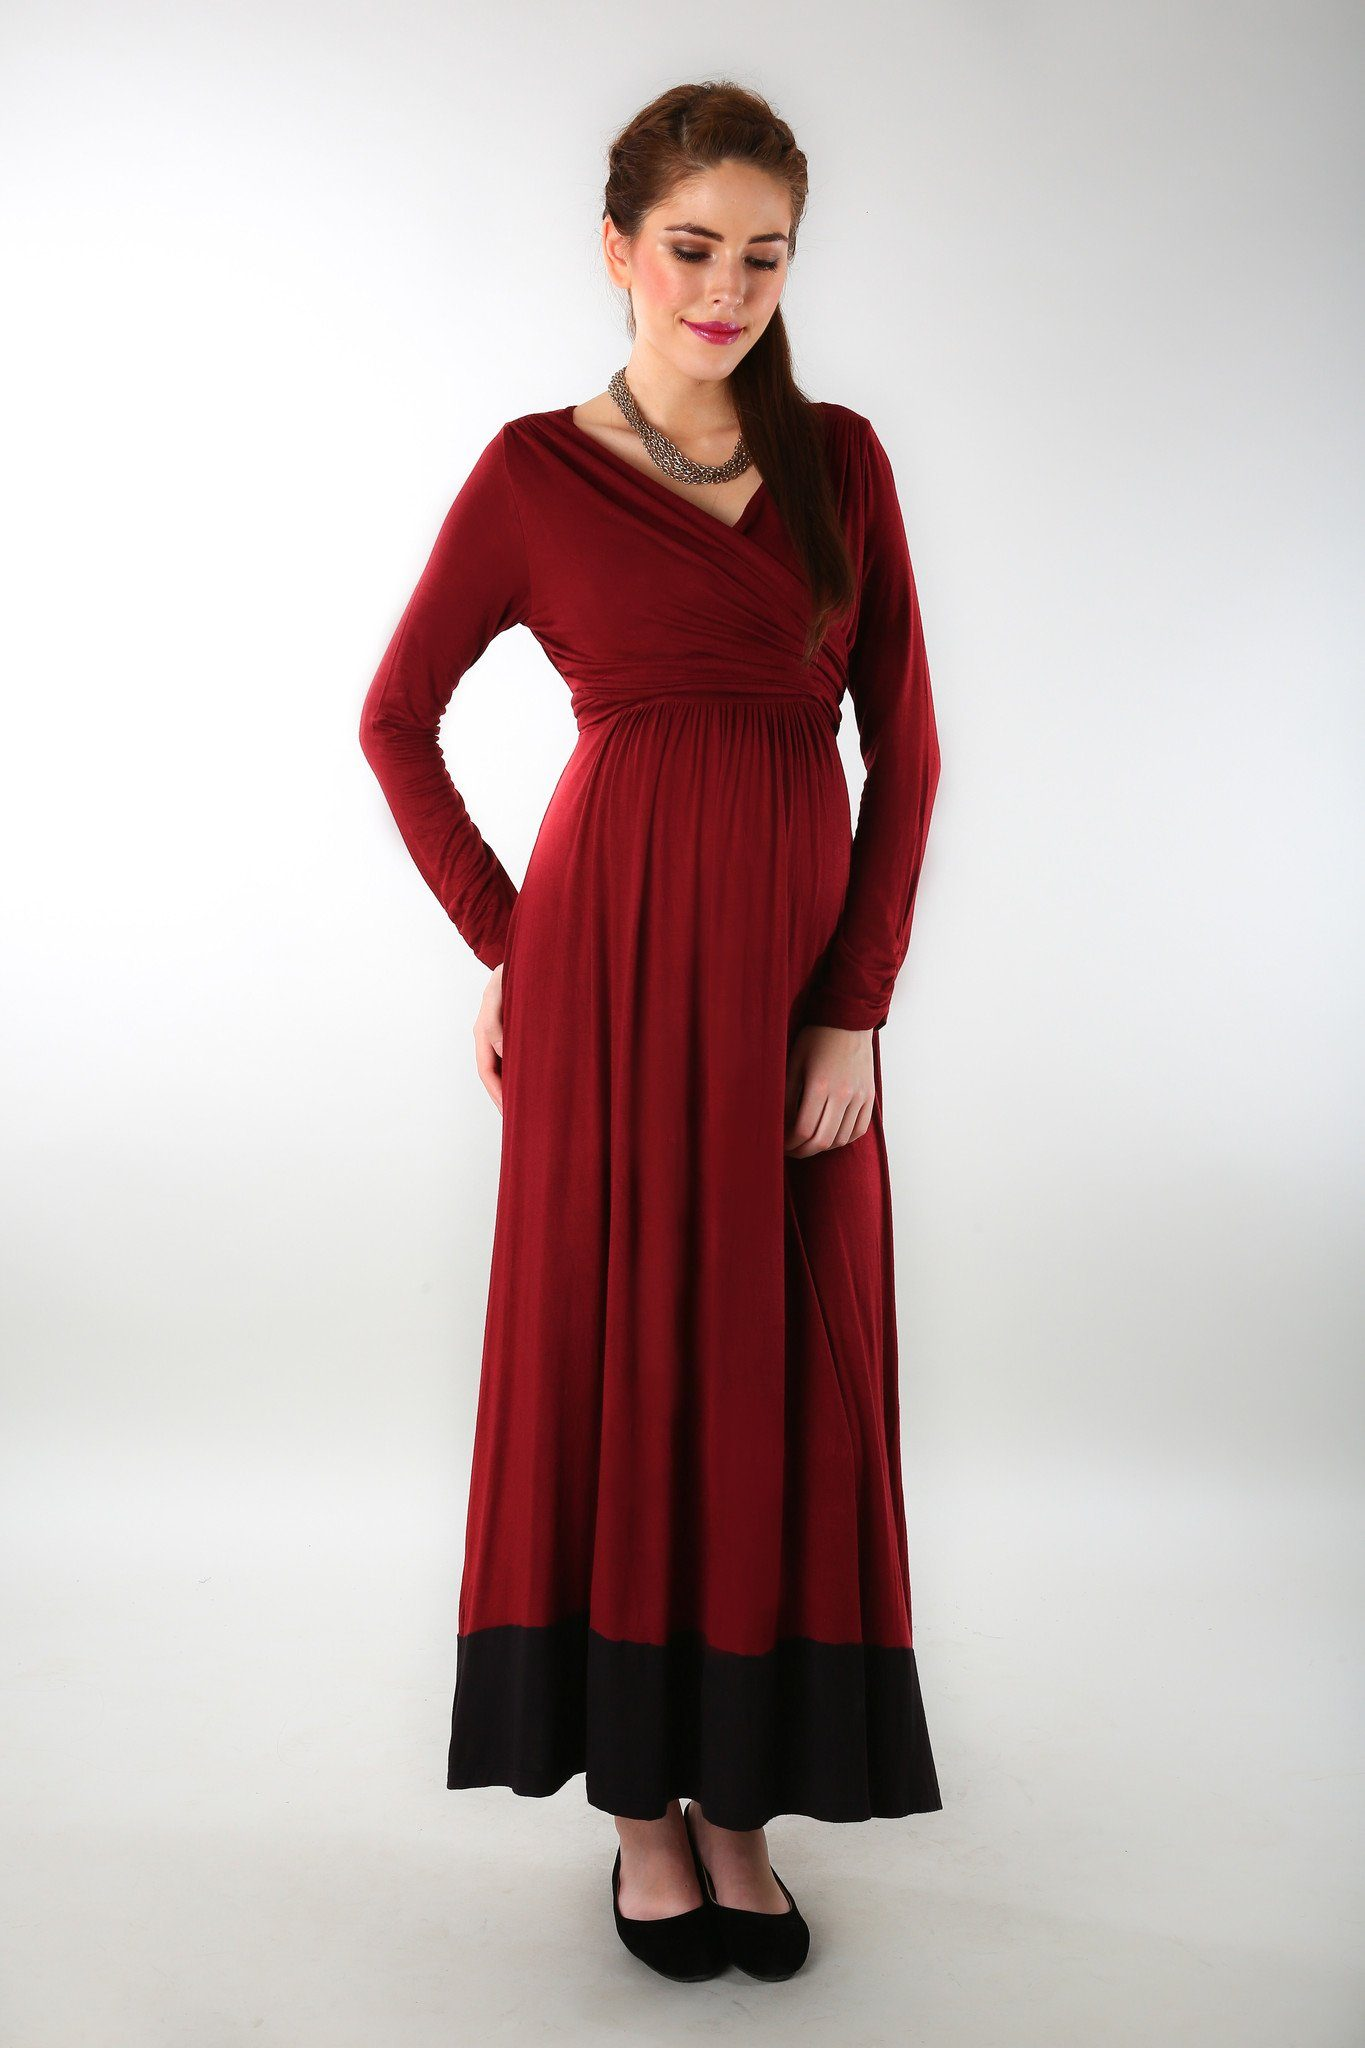 Elegant Wine Front Wrap Maternity Dress - MOMZJOY.COM - 4